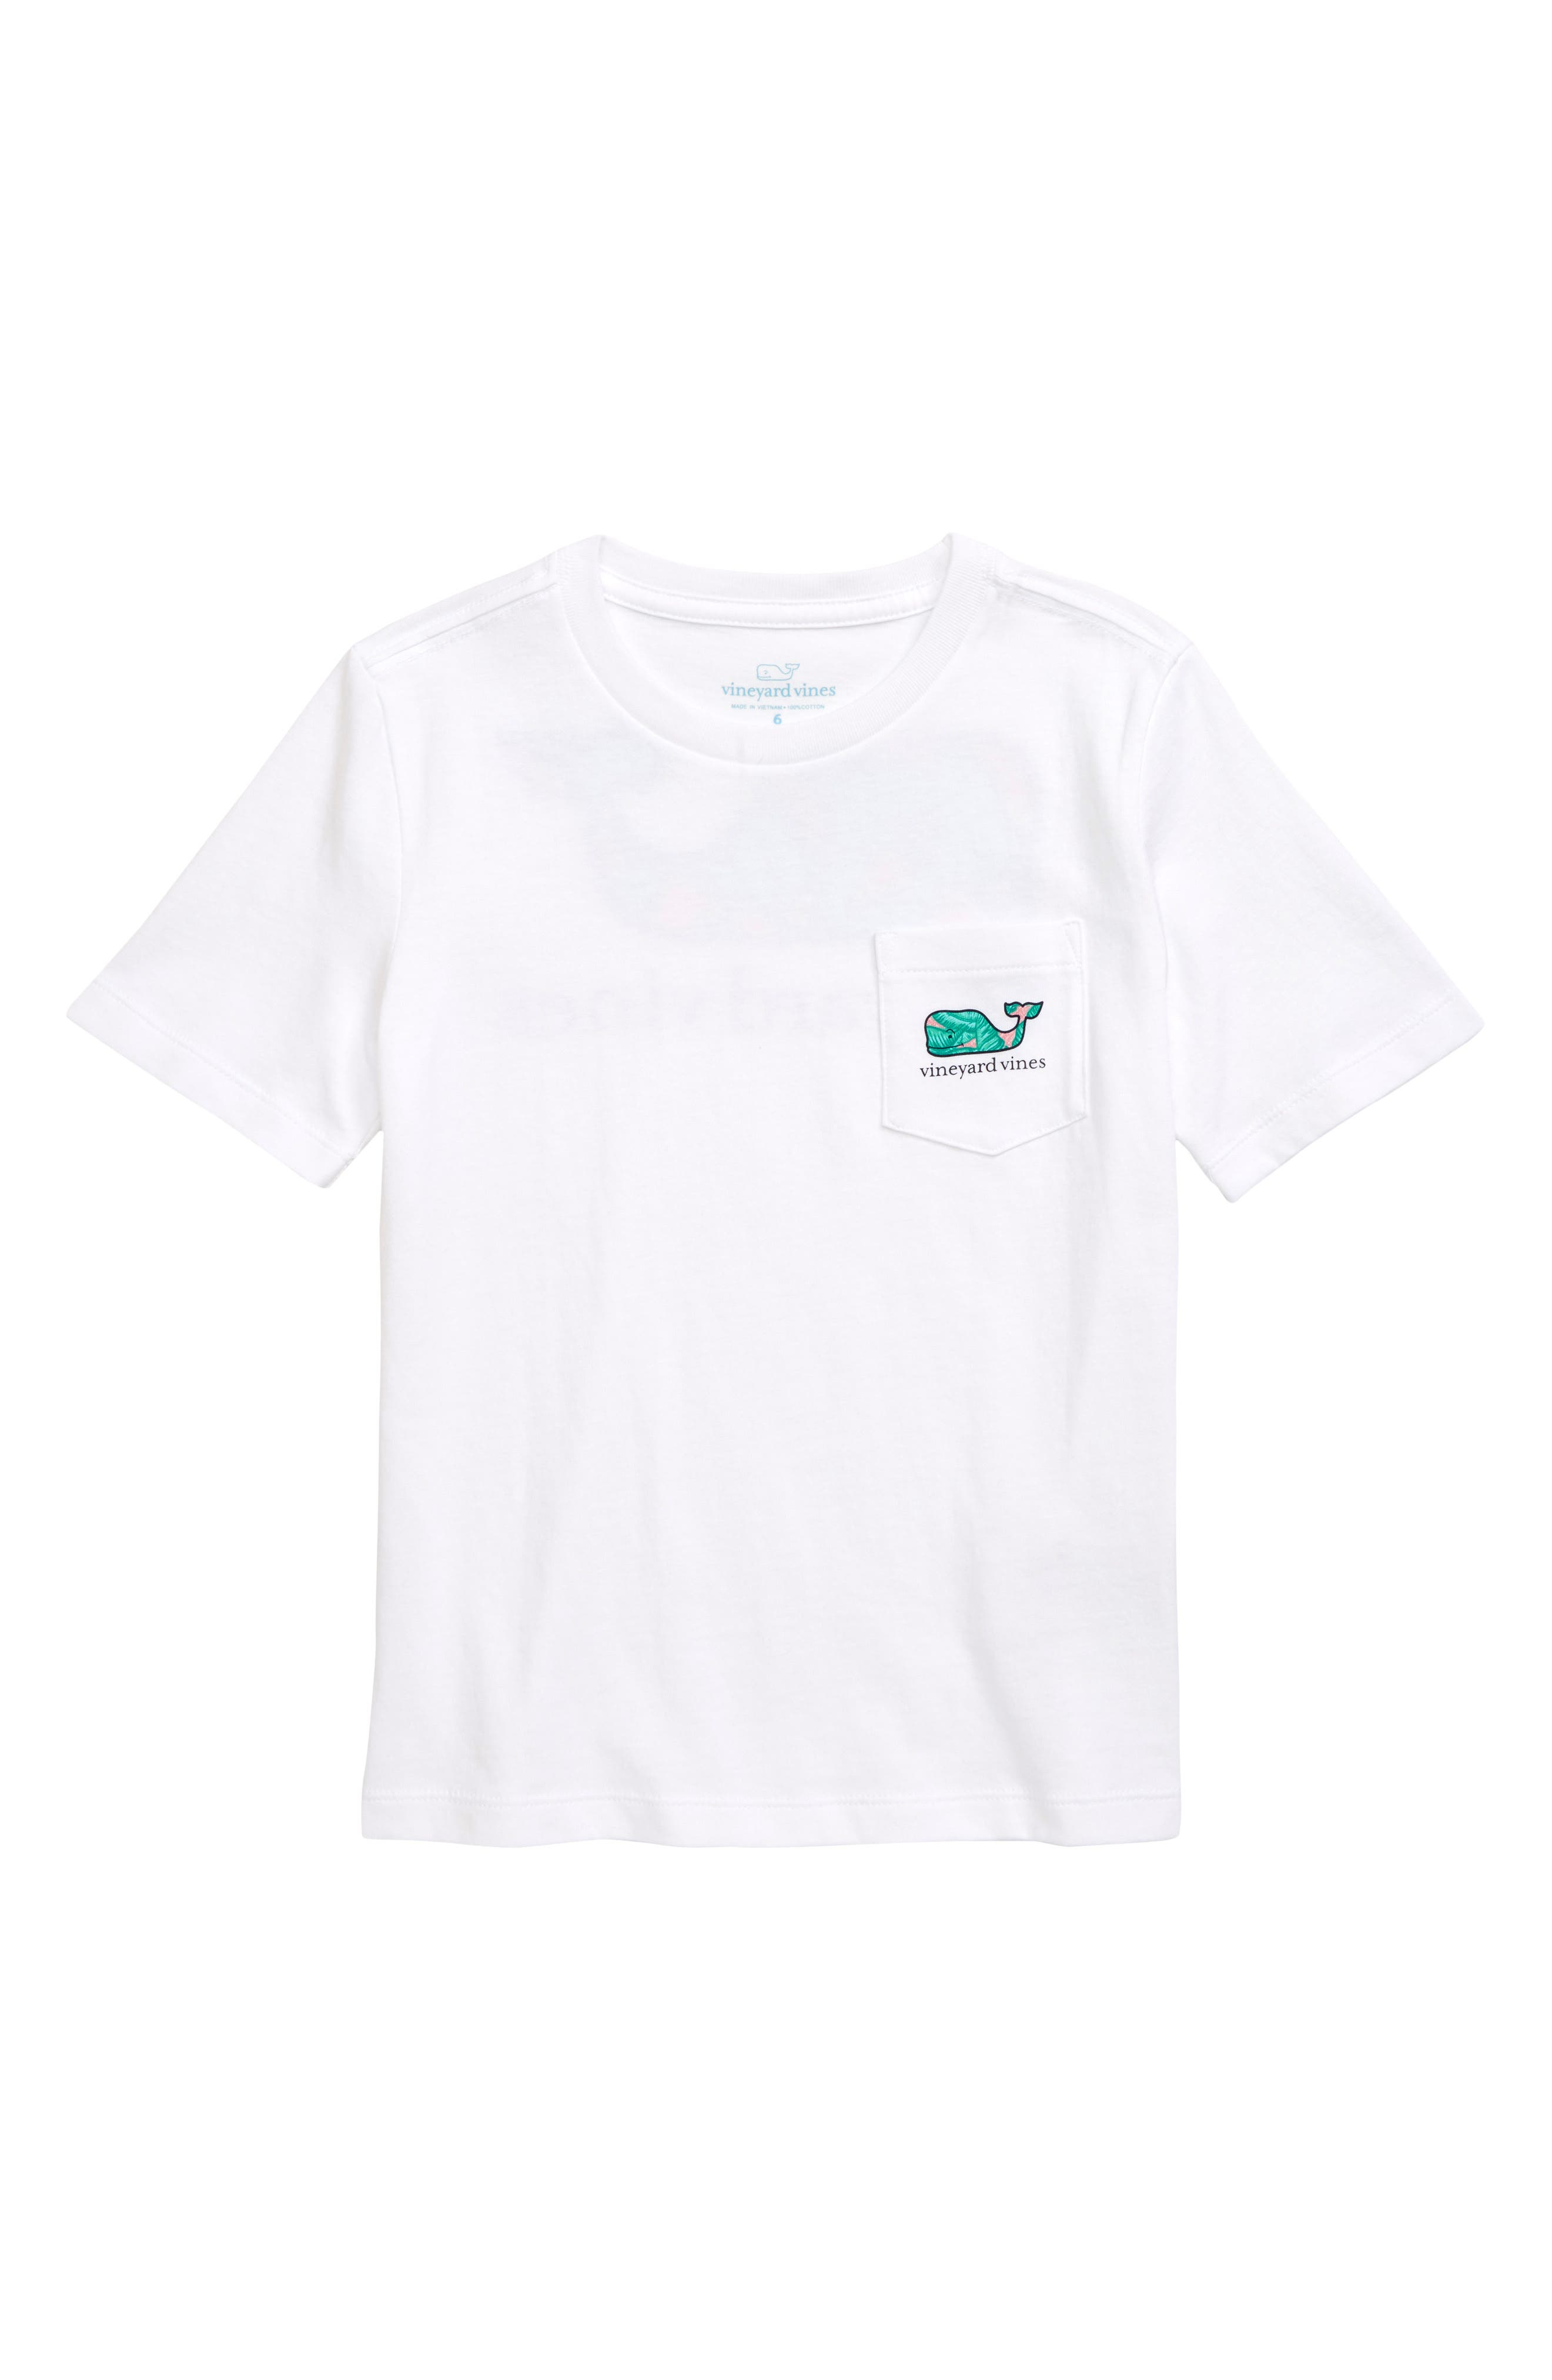 Kid/'s Off to Work Ants T-Shirt kids insect t-shirt Brand New